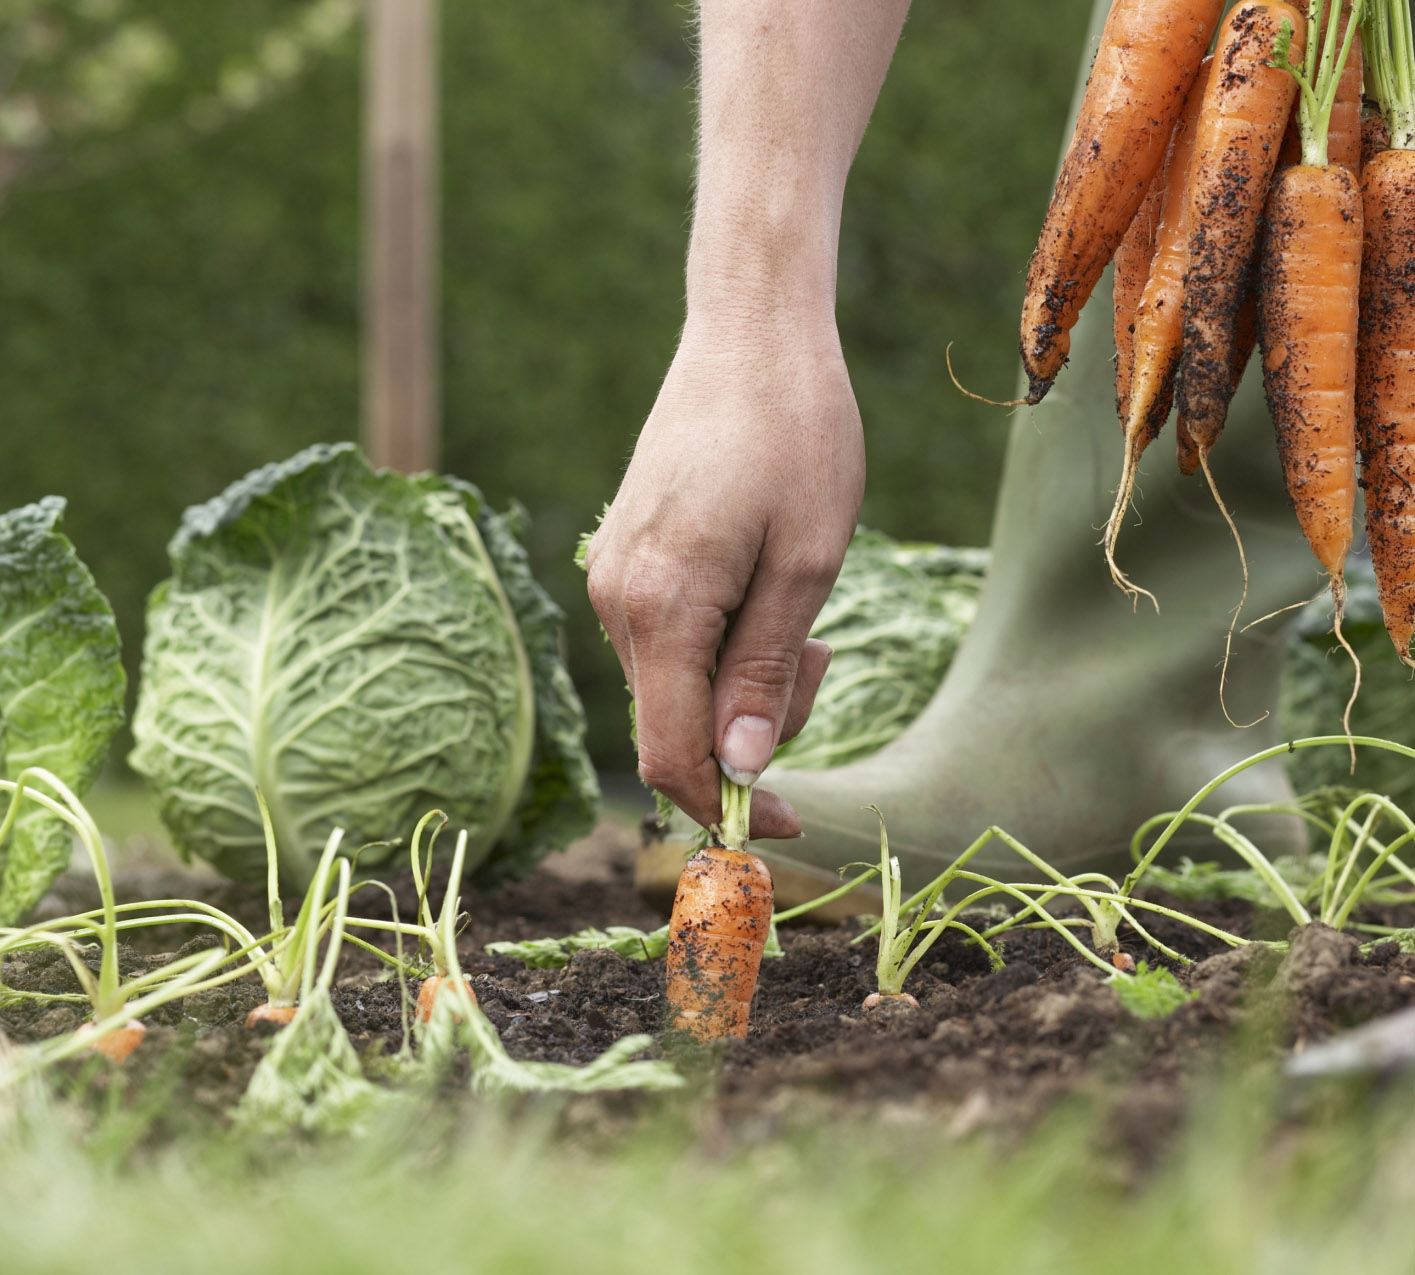 Spray paint, not plants: How to keep a vegetable garden weed- and pest-free